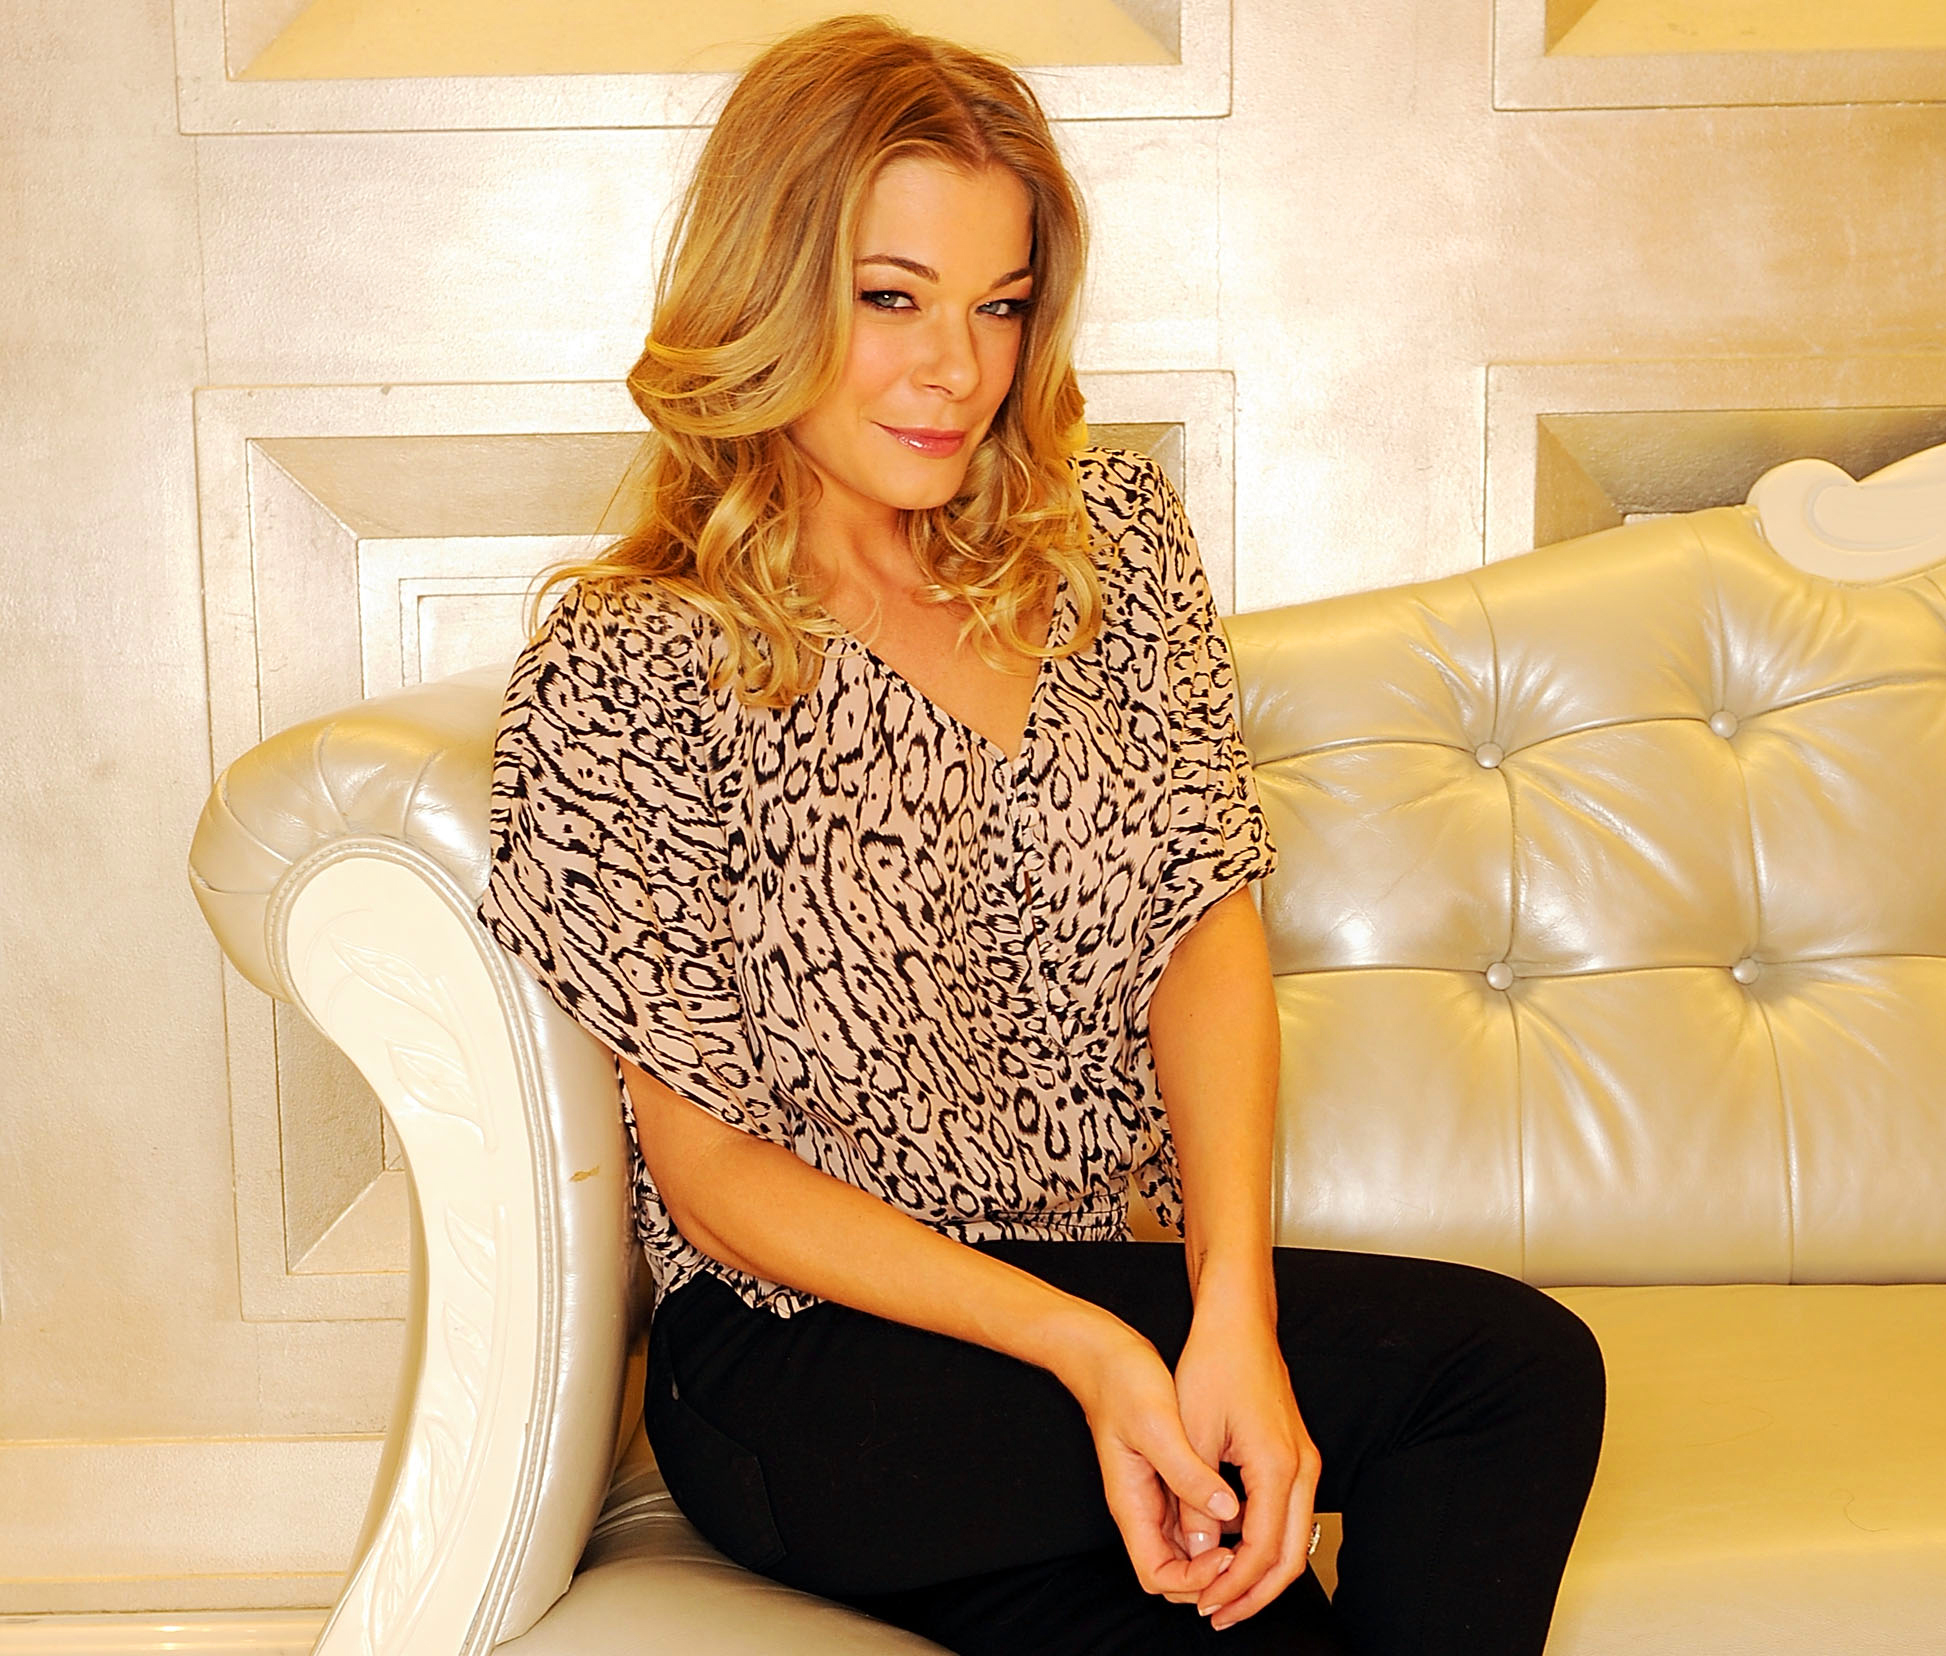 """Revisit Brandi Glanville's Feud With Eddie Cibrian and LeAnn Rimes - Rimes admitted herself into a 30-day inpatient treatment facility for anxiety. """"LeAnn has had major insecurity issues since she first got together with Eddie,"""" a friend of the couple told Us ."""